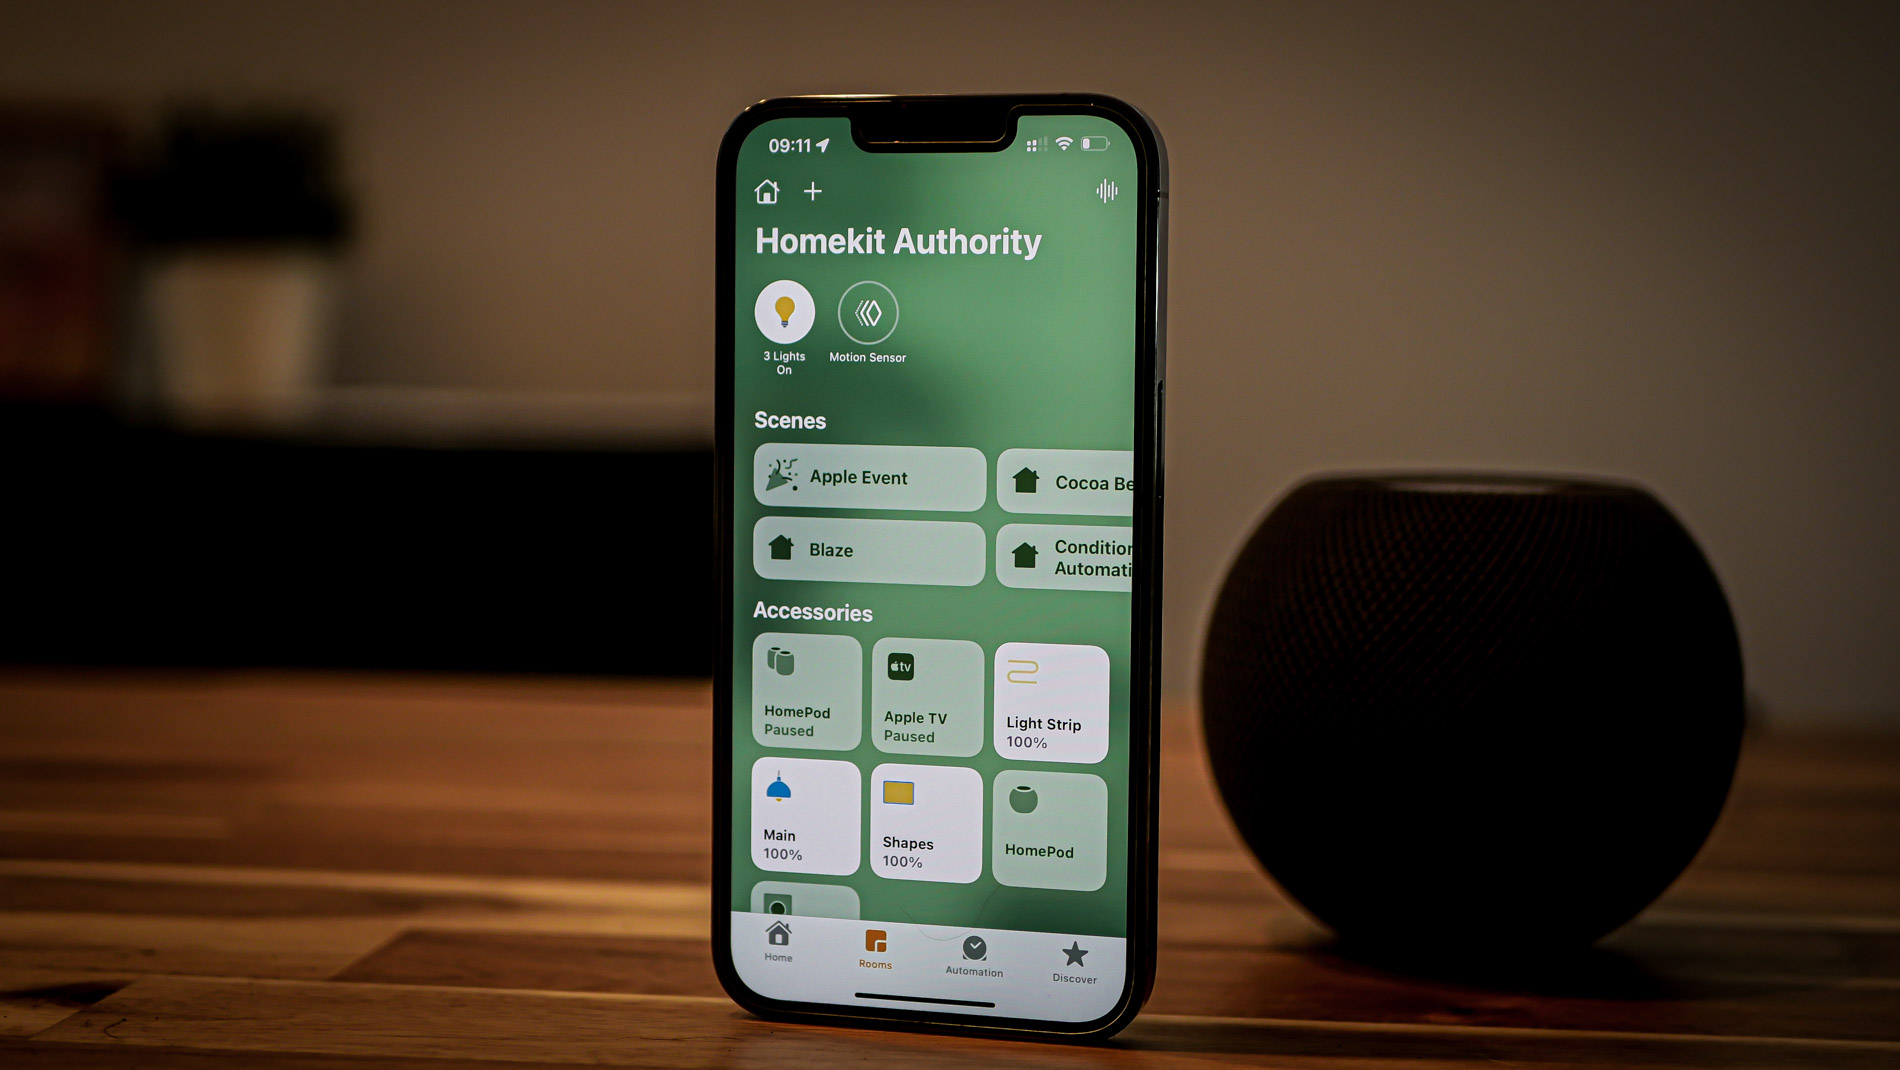 HomeKit on a iPhone with HomePod and iOS15